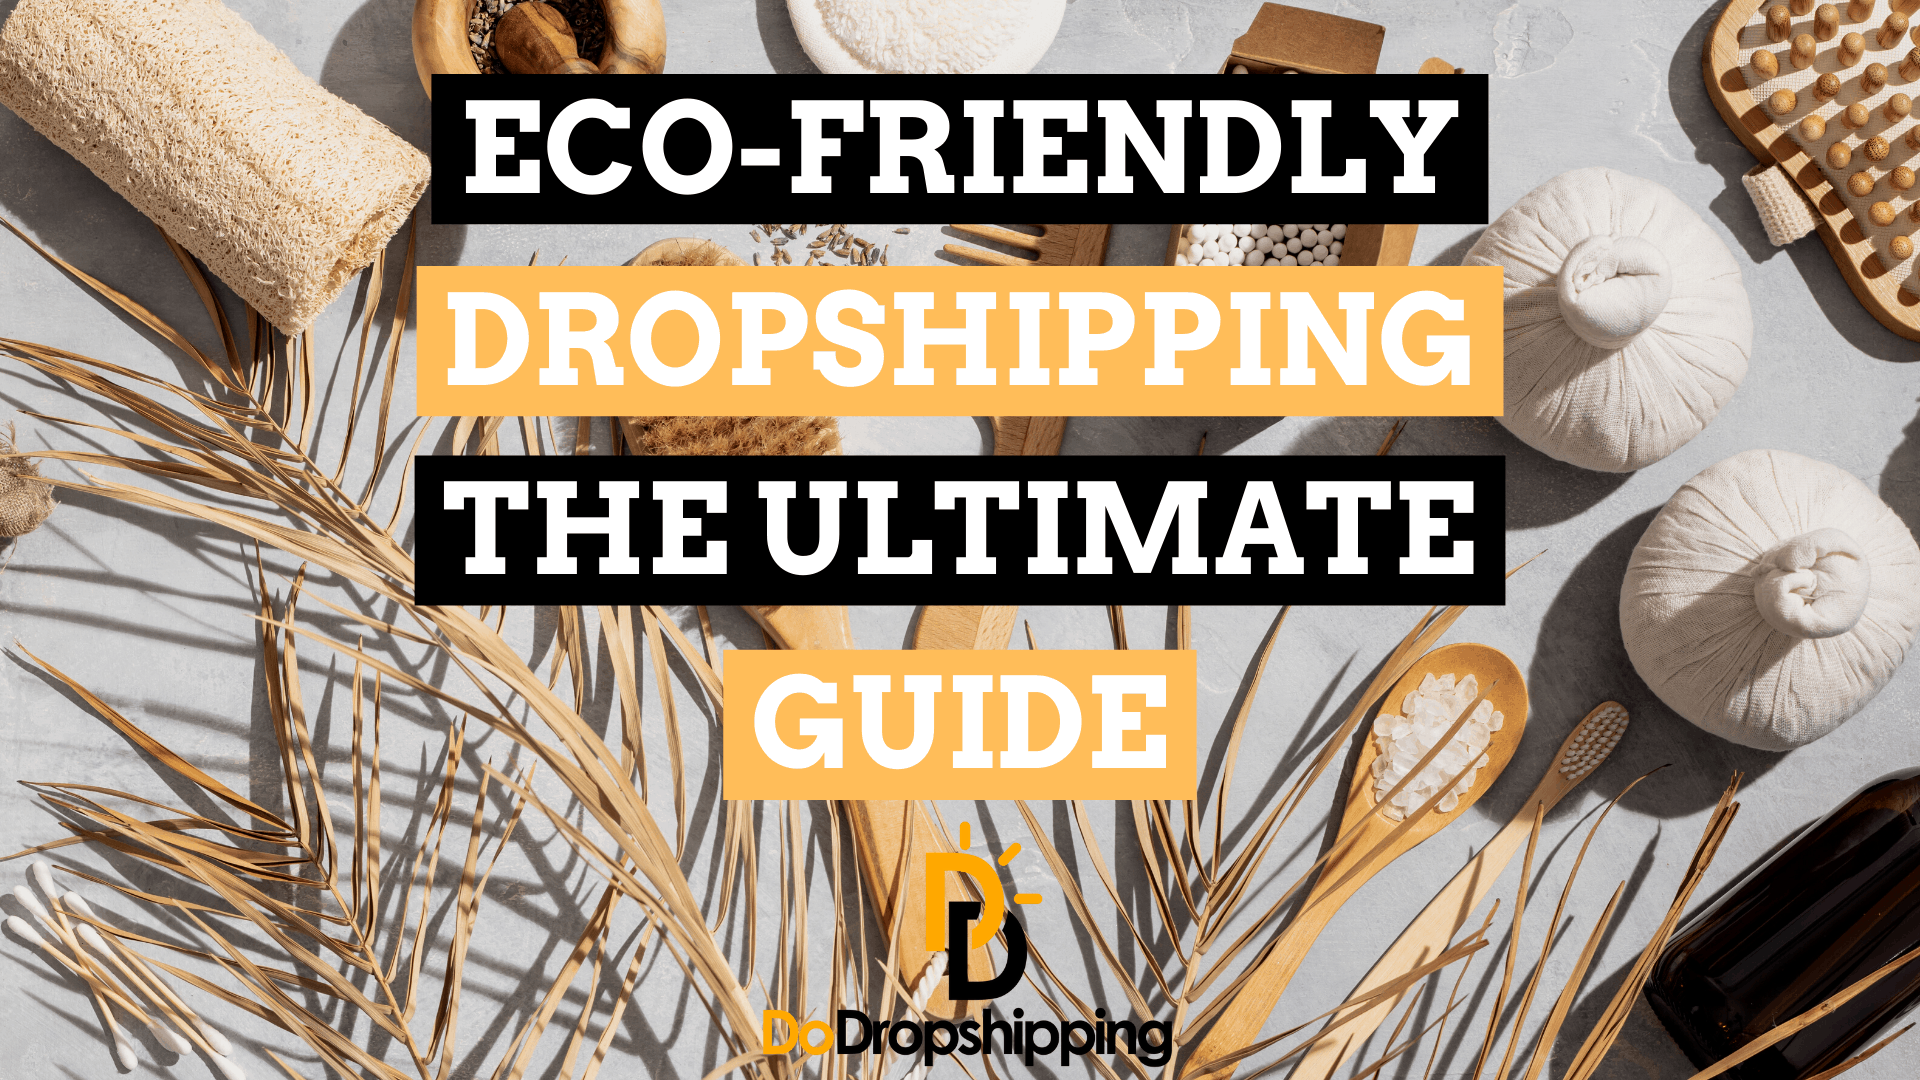 Eco-Friendly Dropshipping: The Ultimate Guide to Going Green